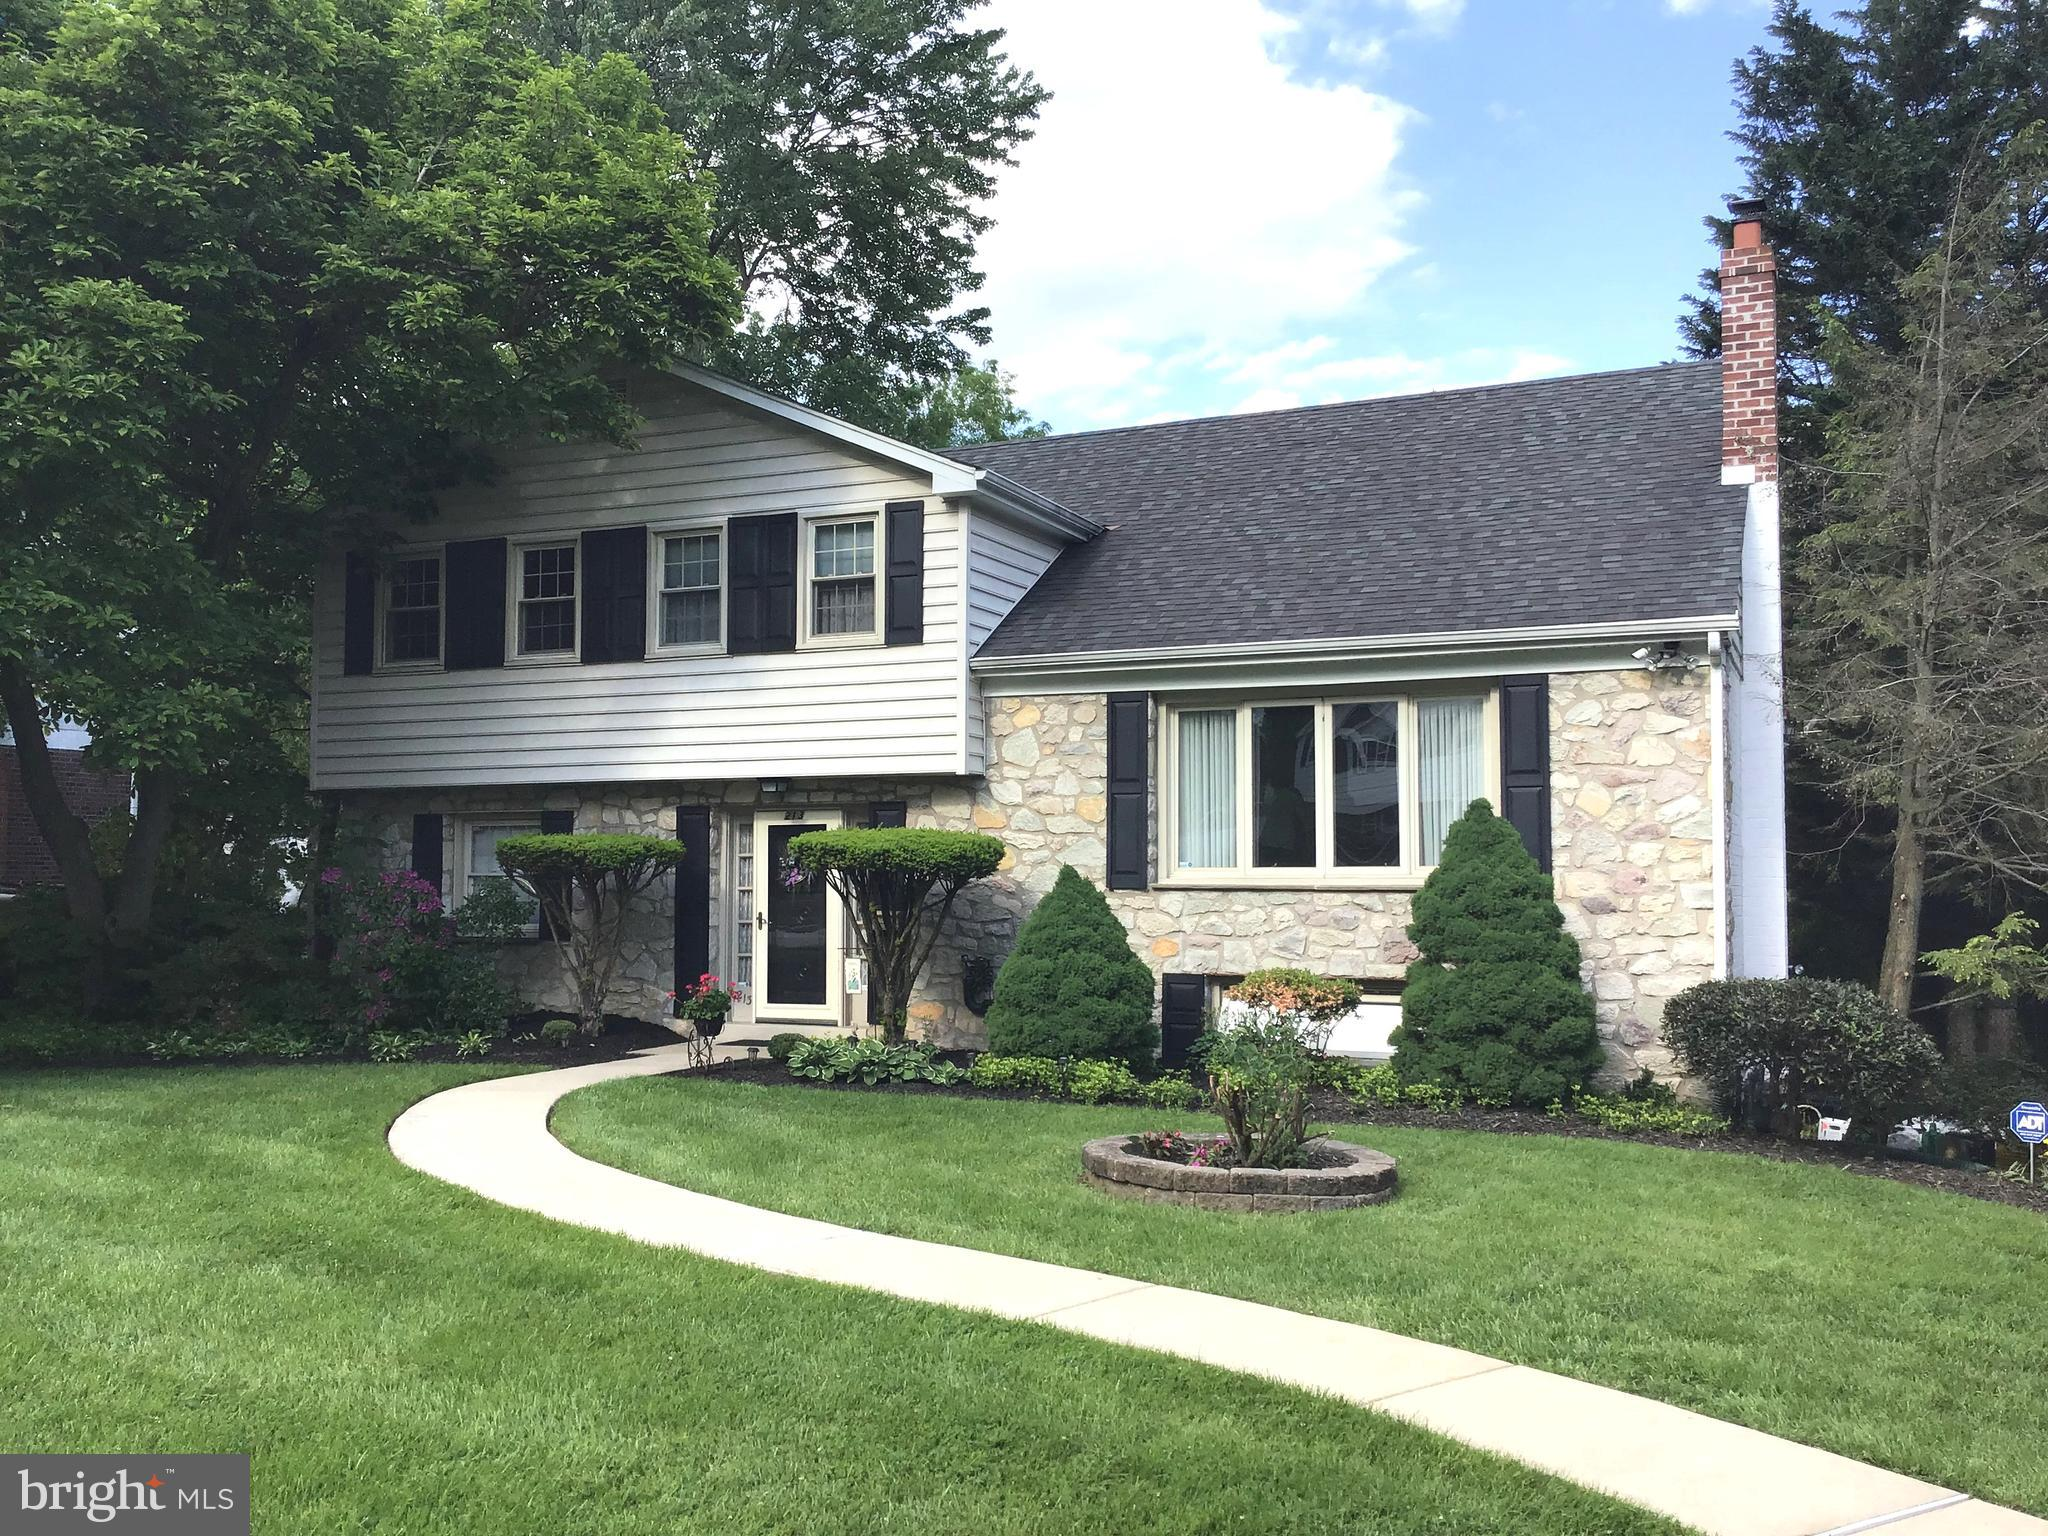 213 PARKVIEW DRIVE, SPRINGFIELD, PA 19064